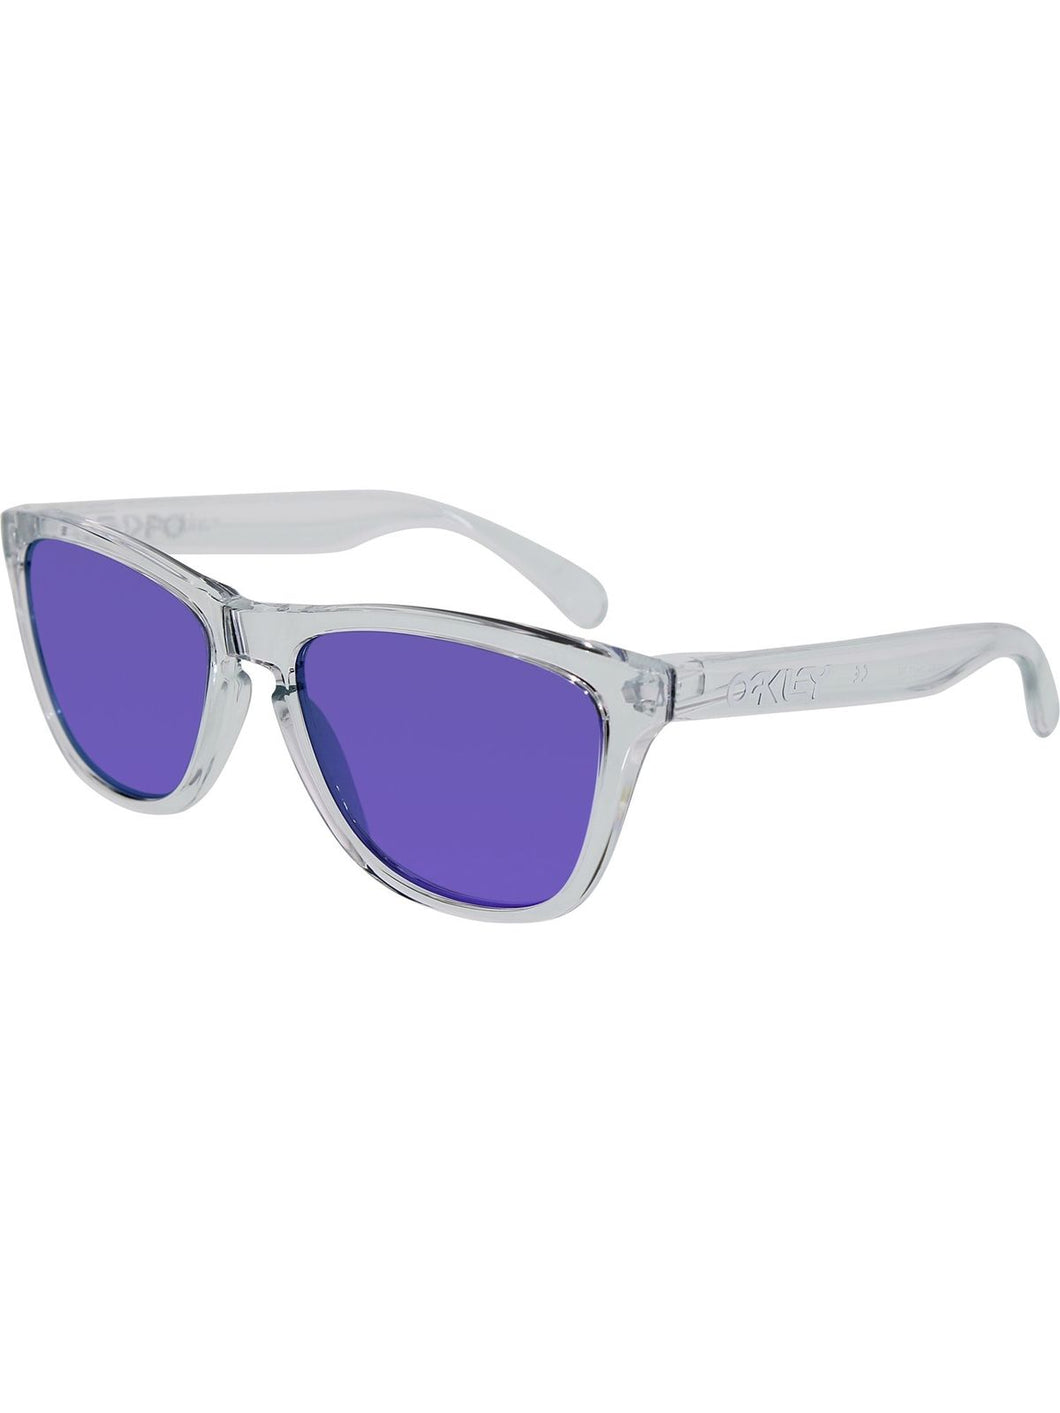 Oakley Sunglasses Unisex 24-305 Frogskins/ Violet Iridium - Watchbatteries